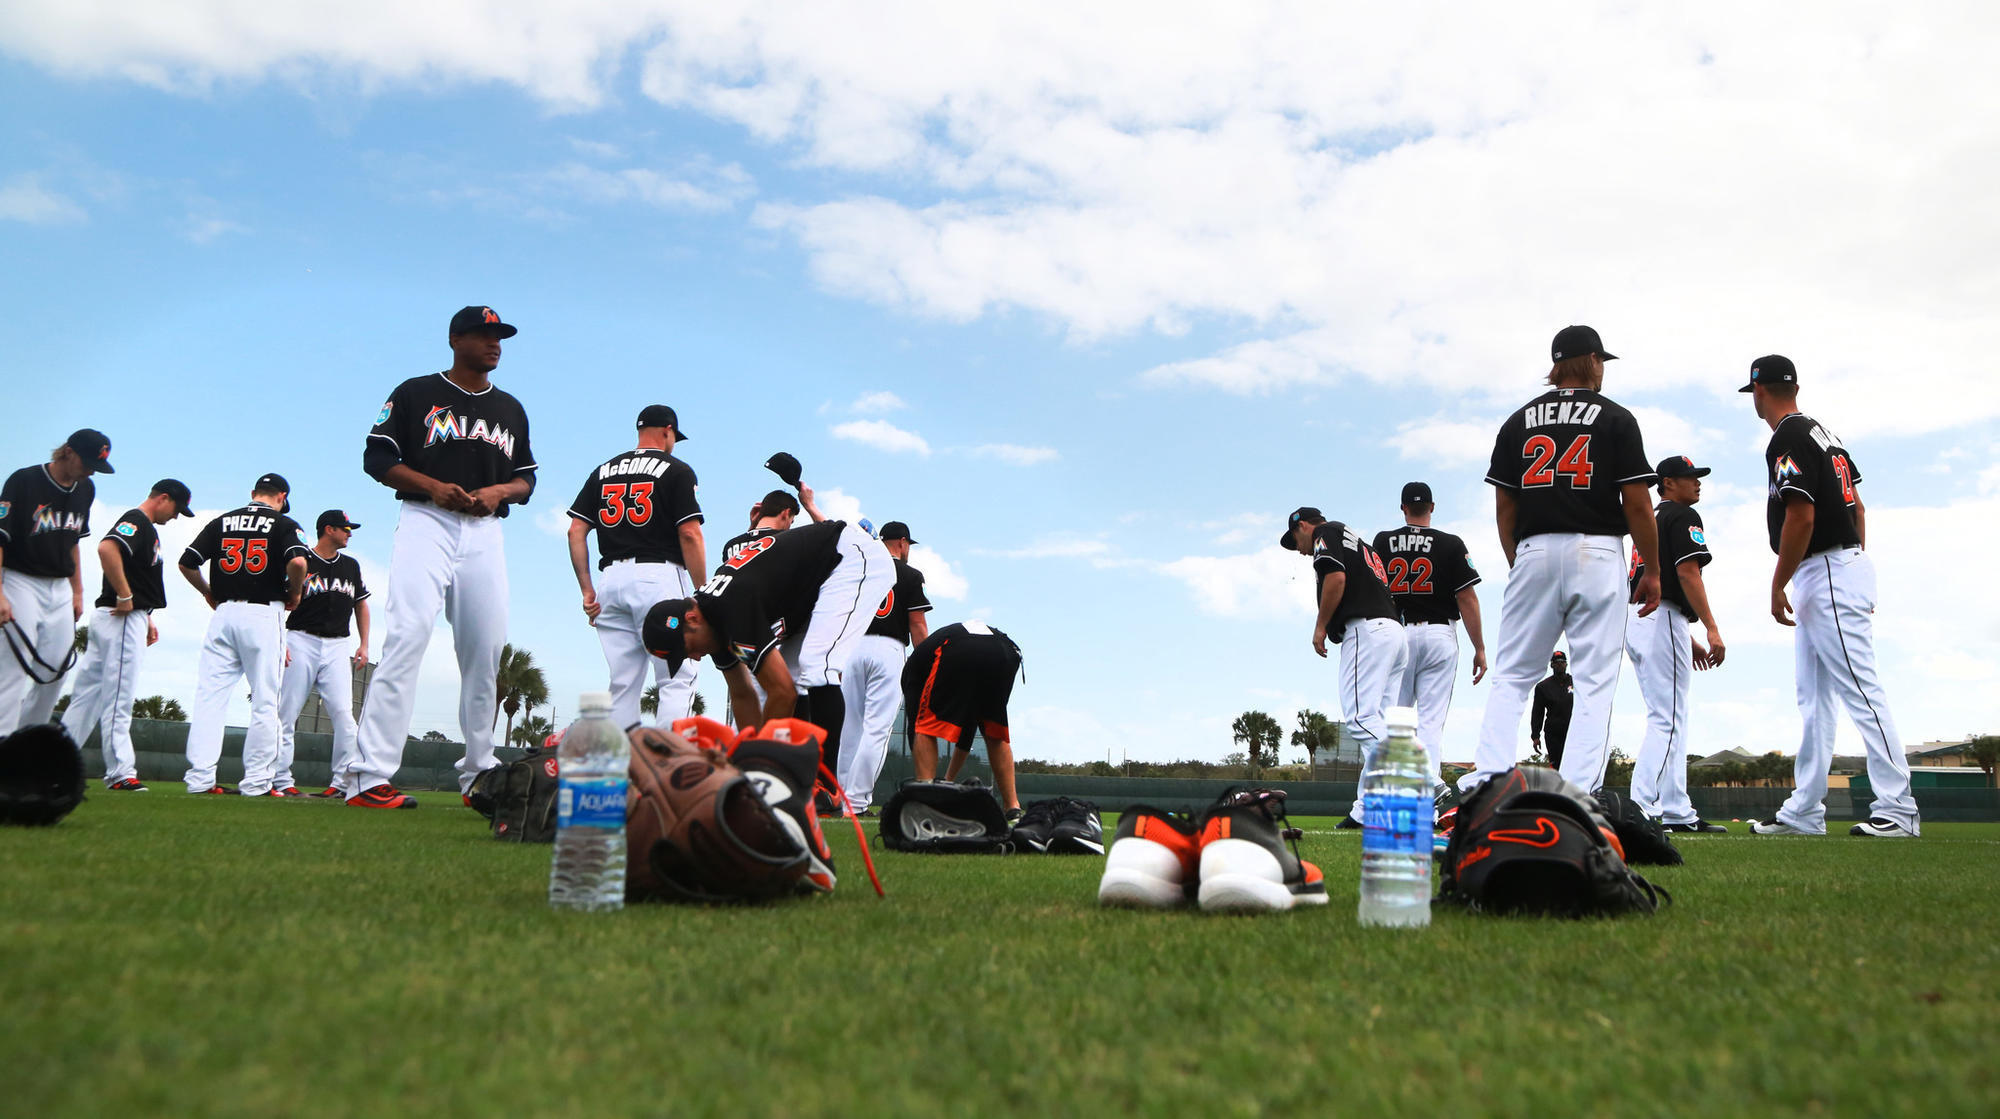 Fl-sp-marlins-prospects-spring-training-20180208